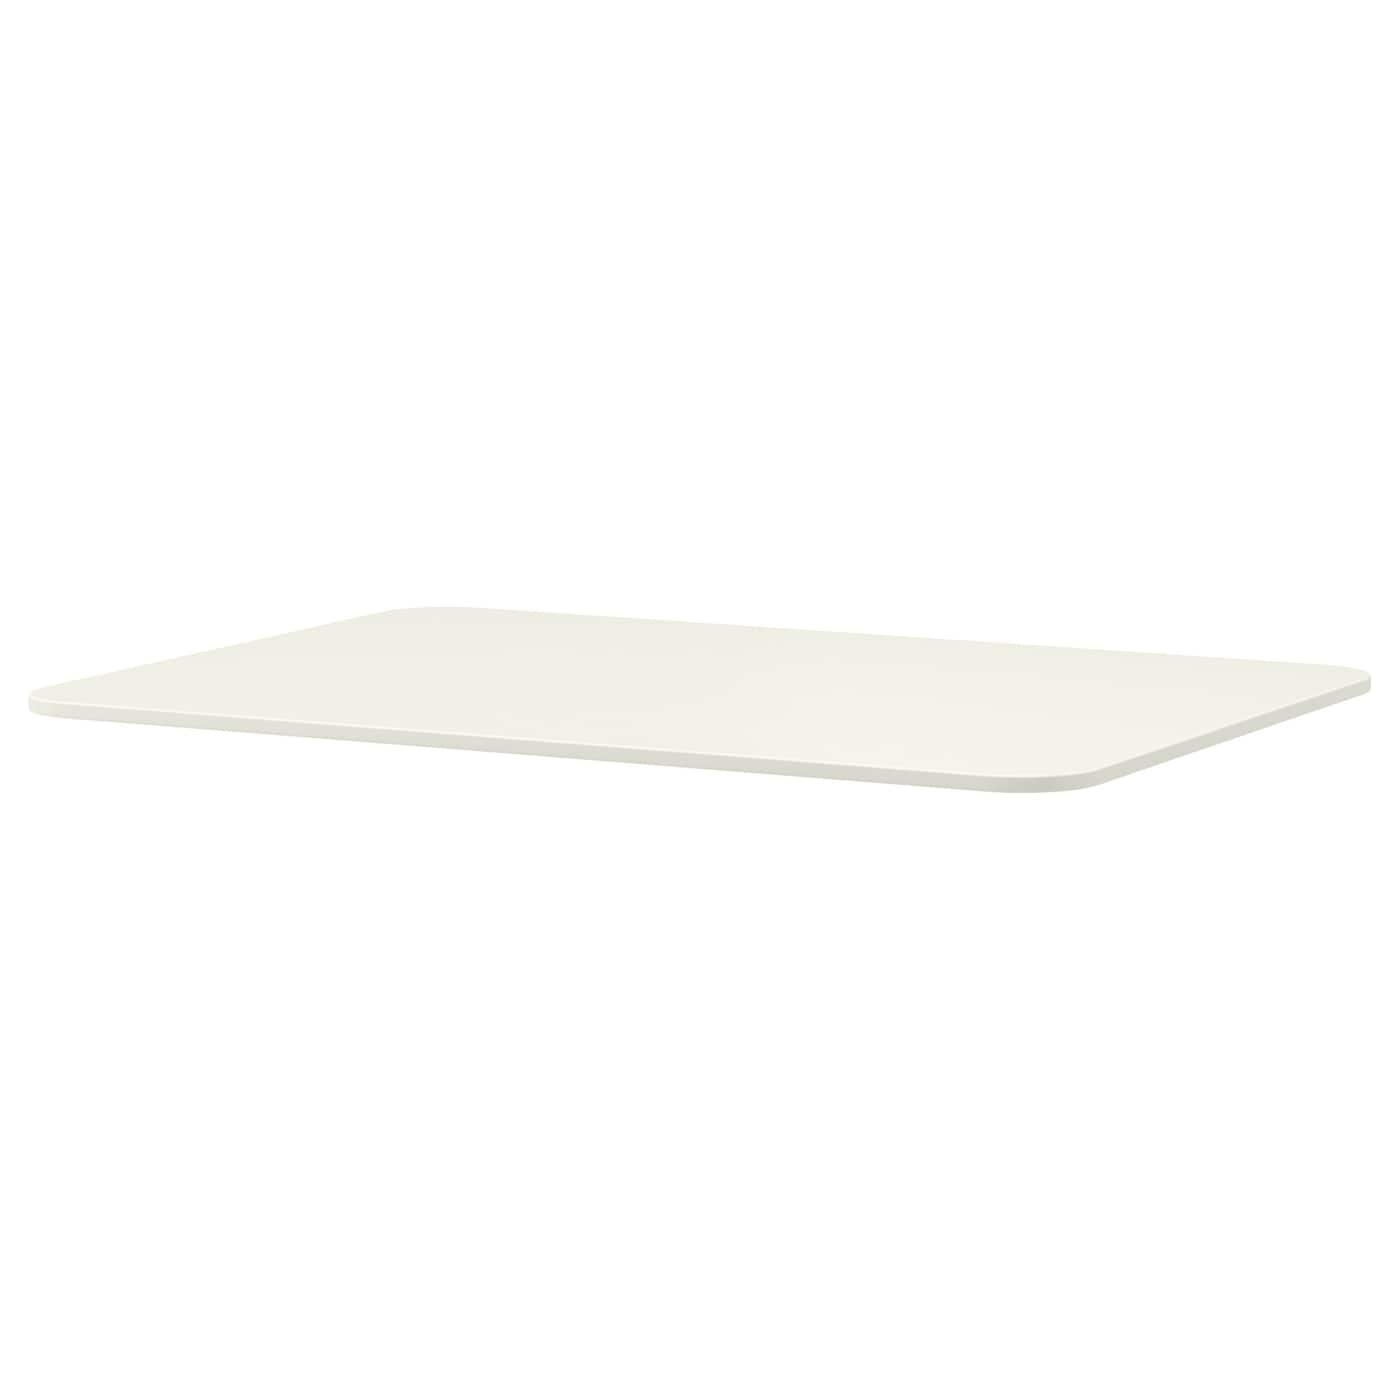 Bekant table top white 120x80 cm ikea for Table 120x80